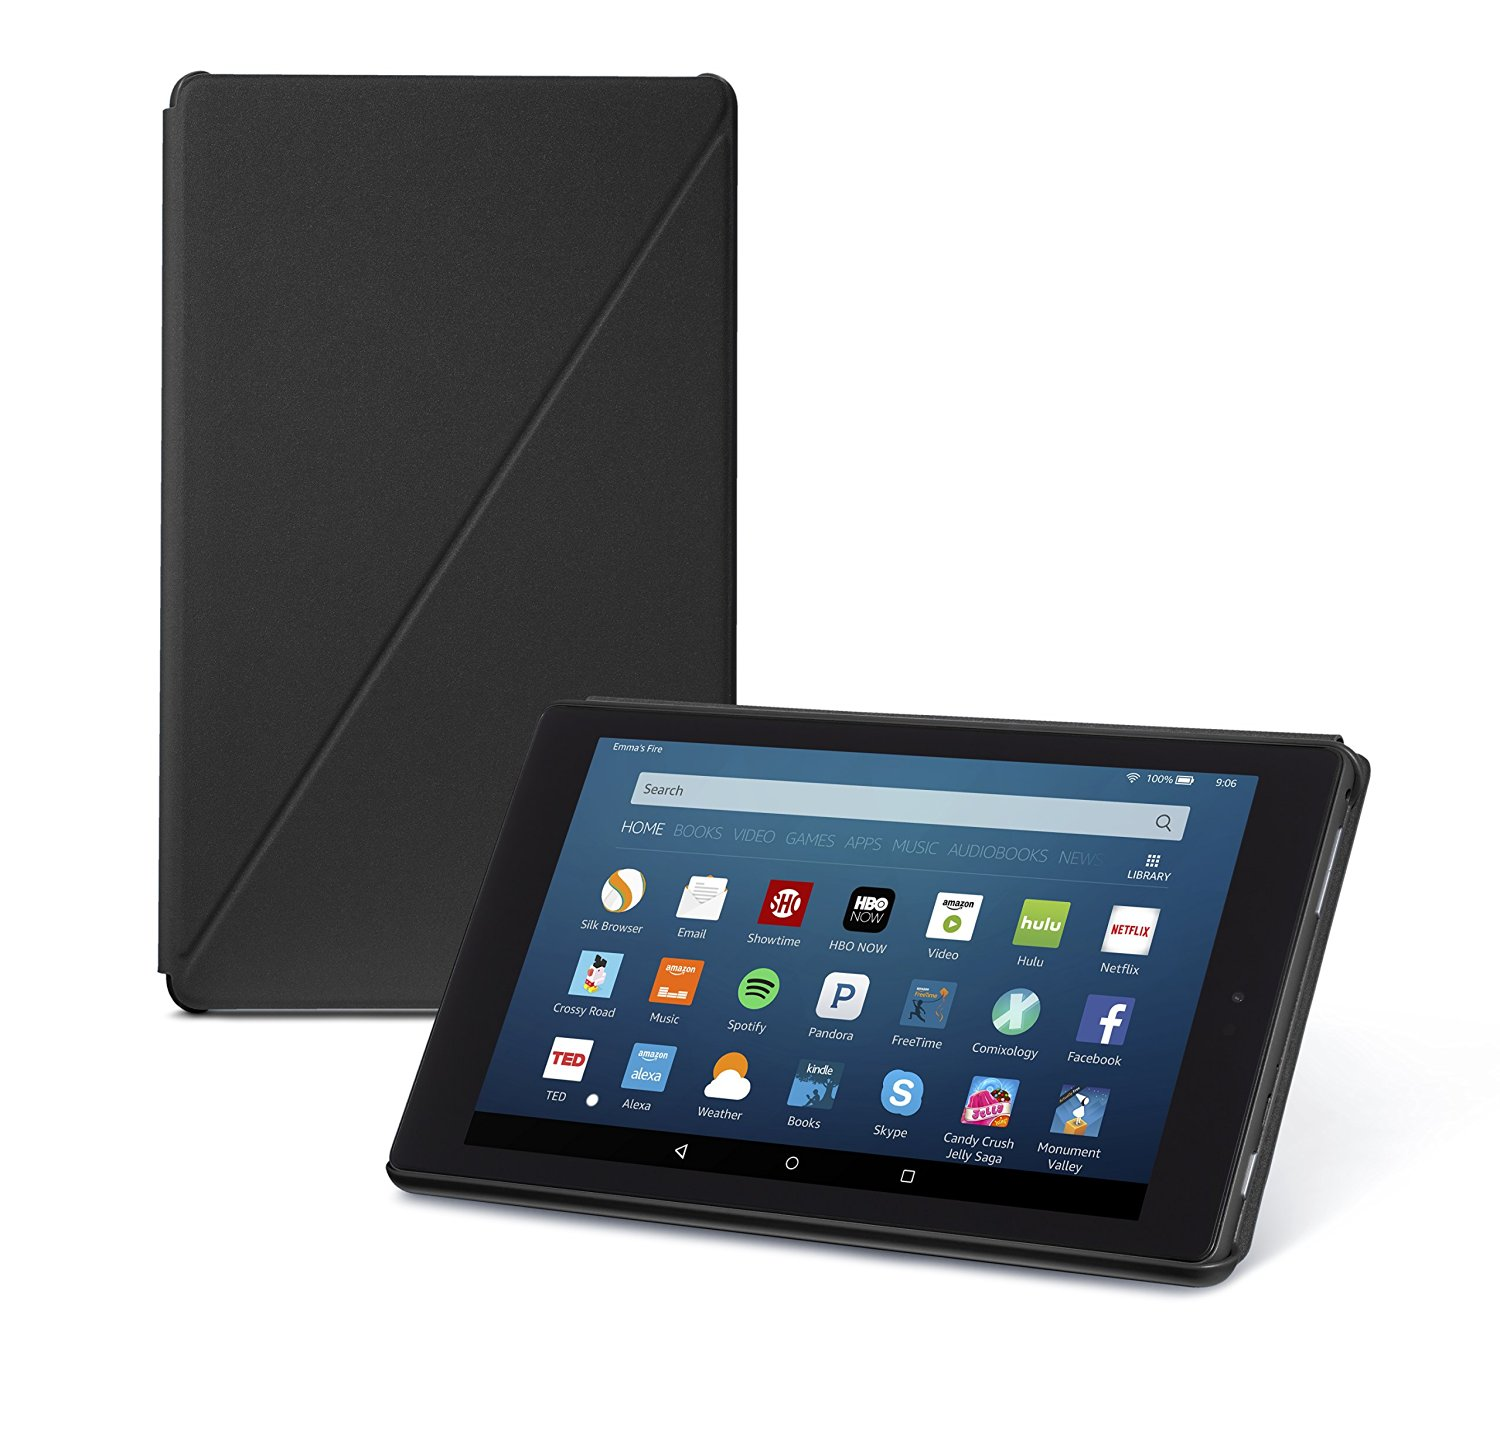 Amazon All-New Amazon Fire HD 8 Tablet Case. 6th Generation, Available in 4 Colors, Slim Design